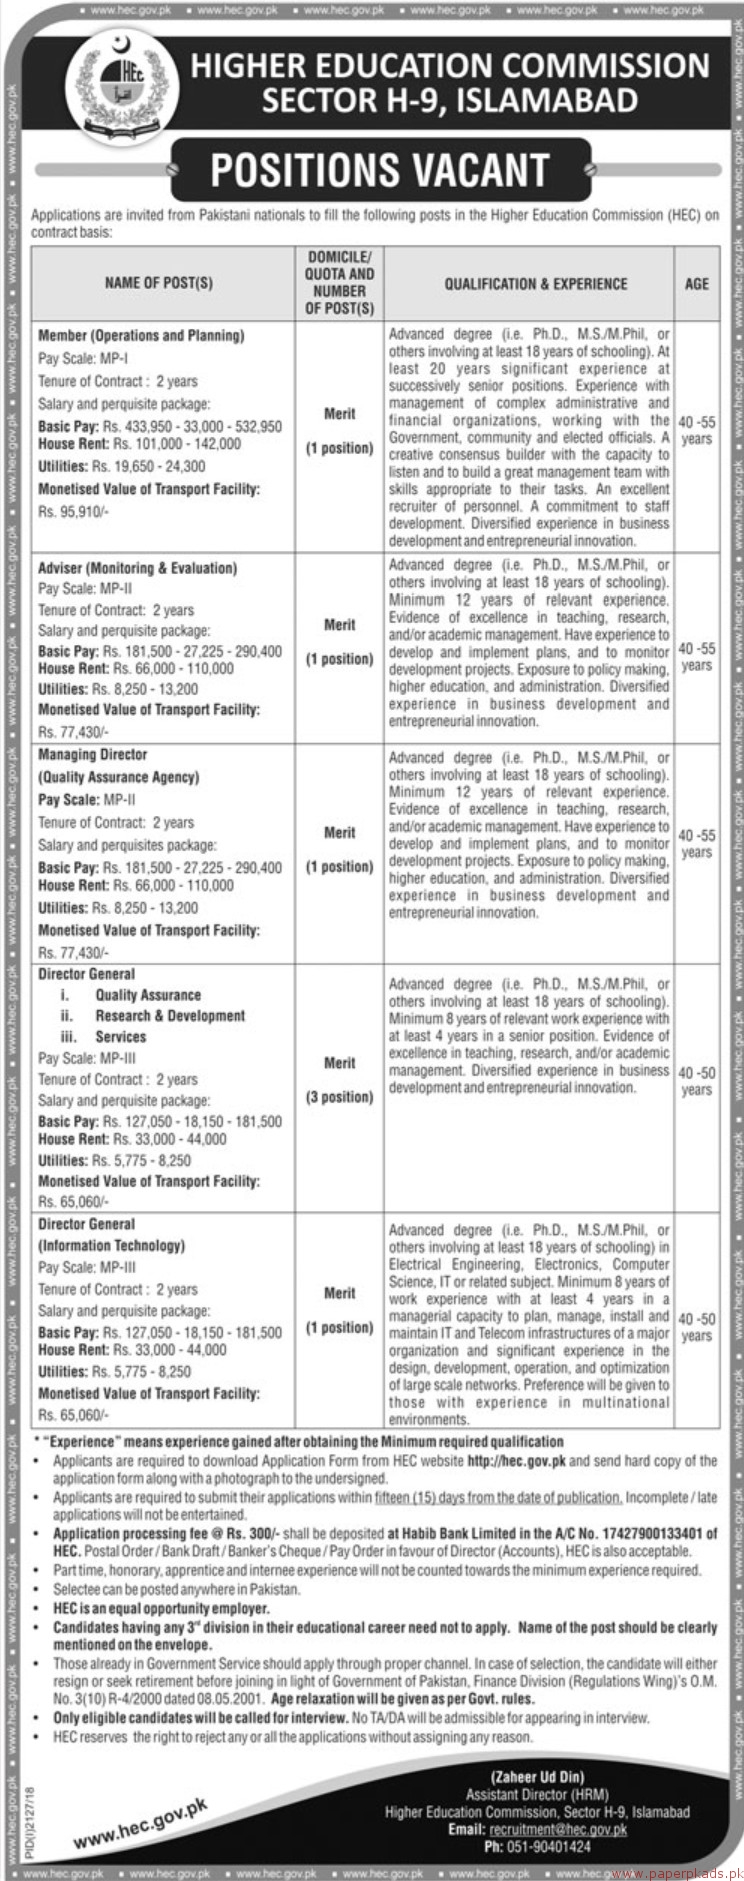 Higher Education Commission Islamabad Jobs 2018 Latest